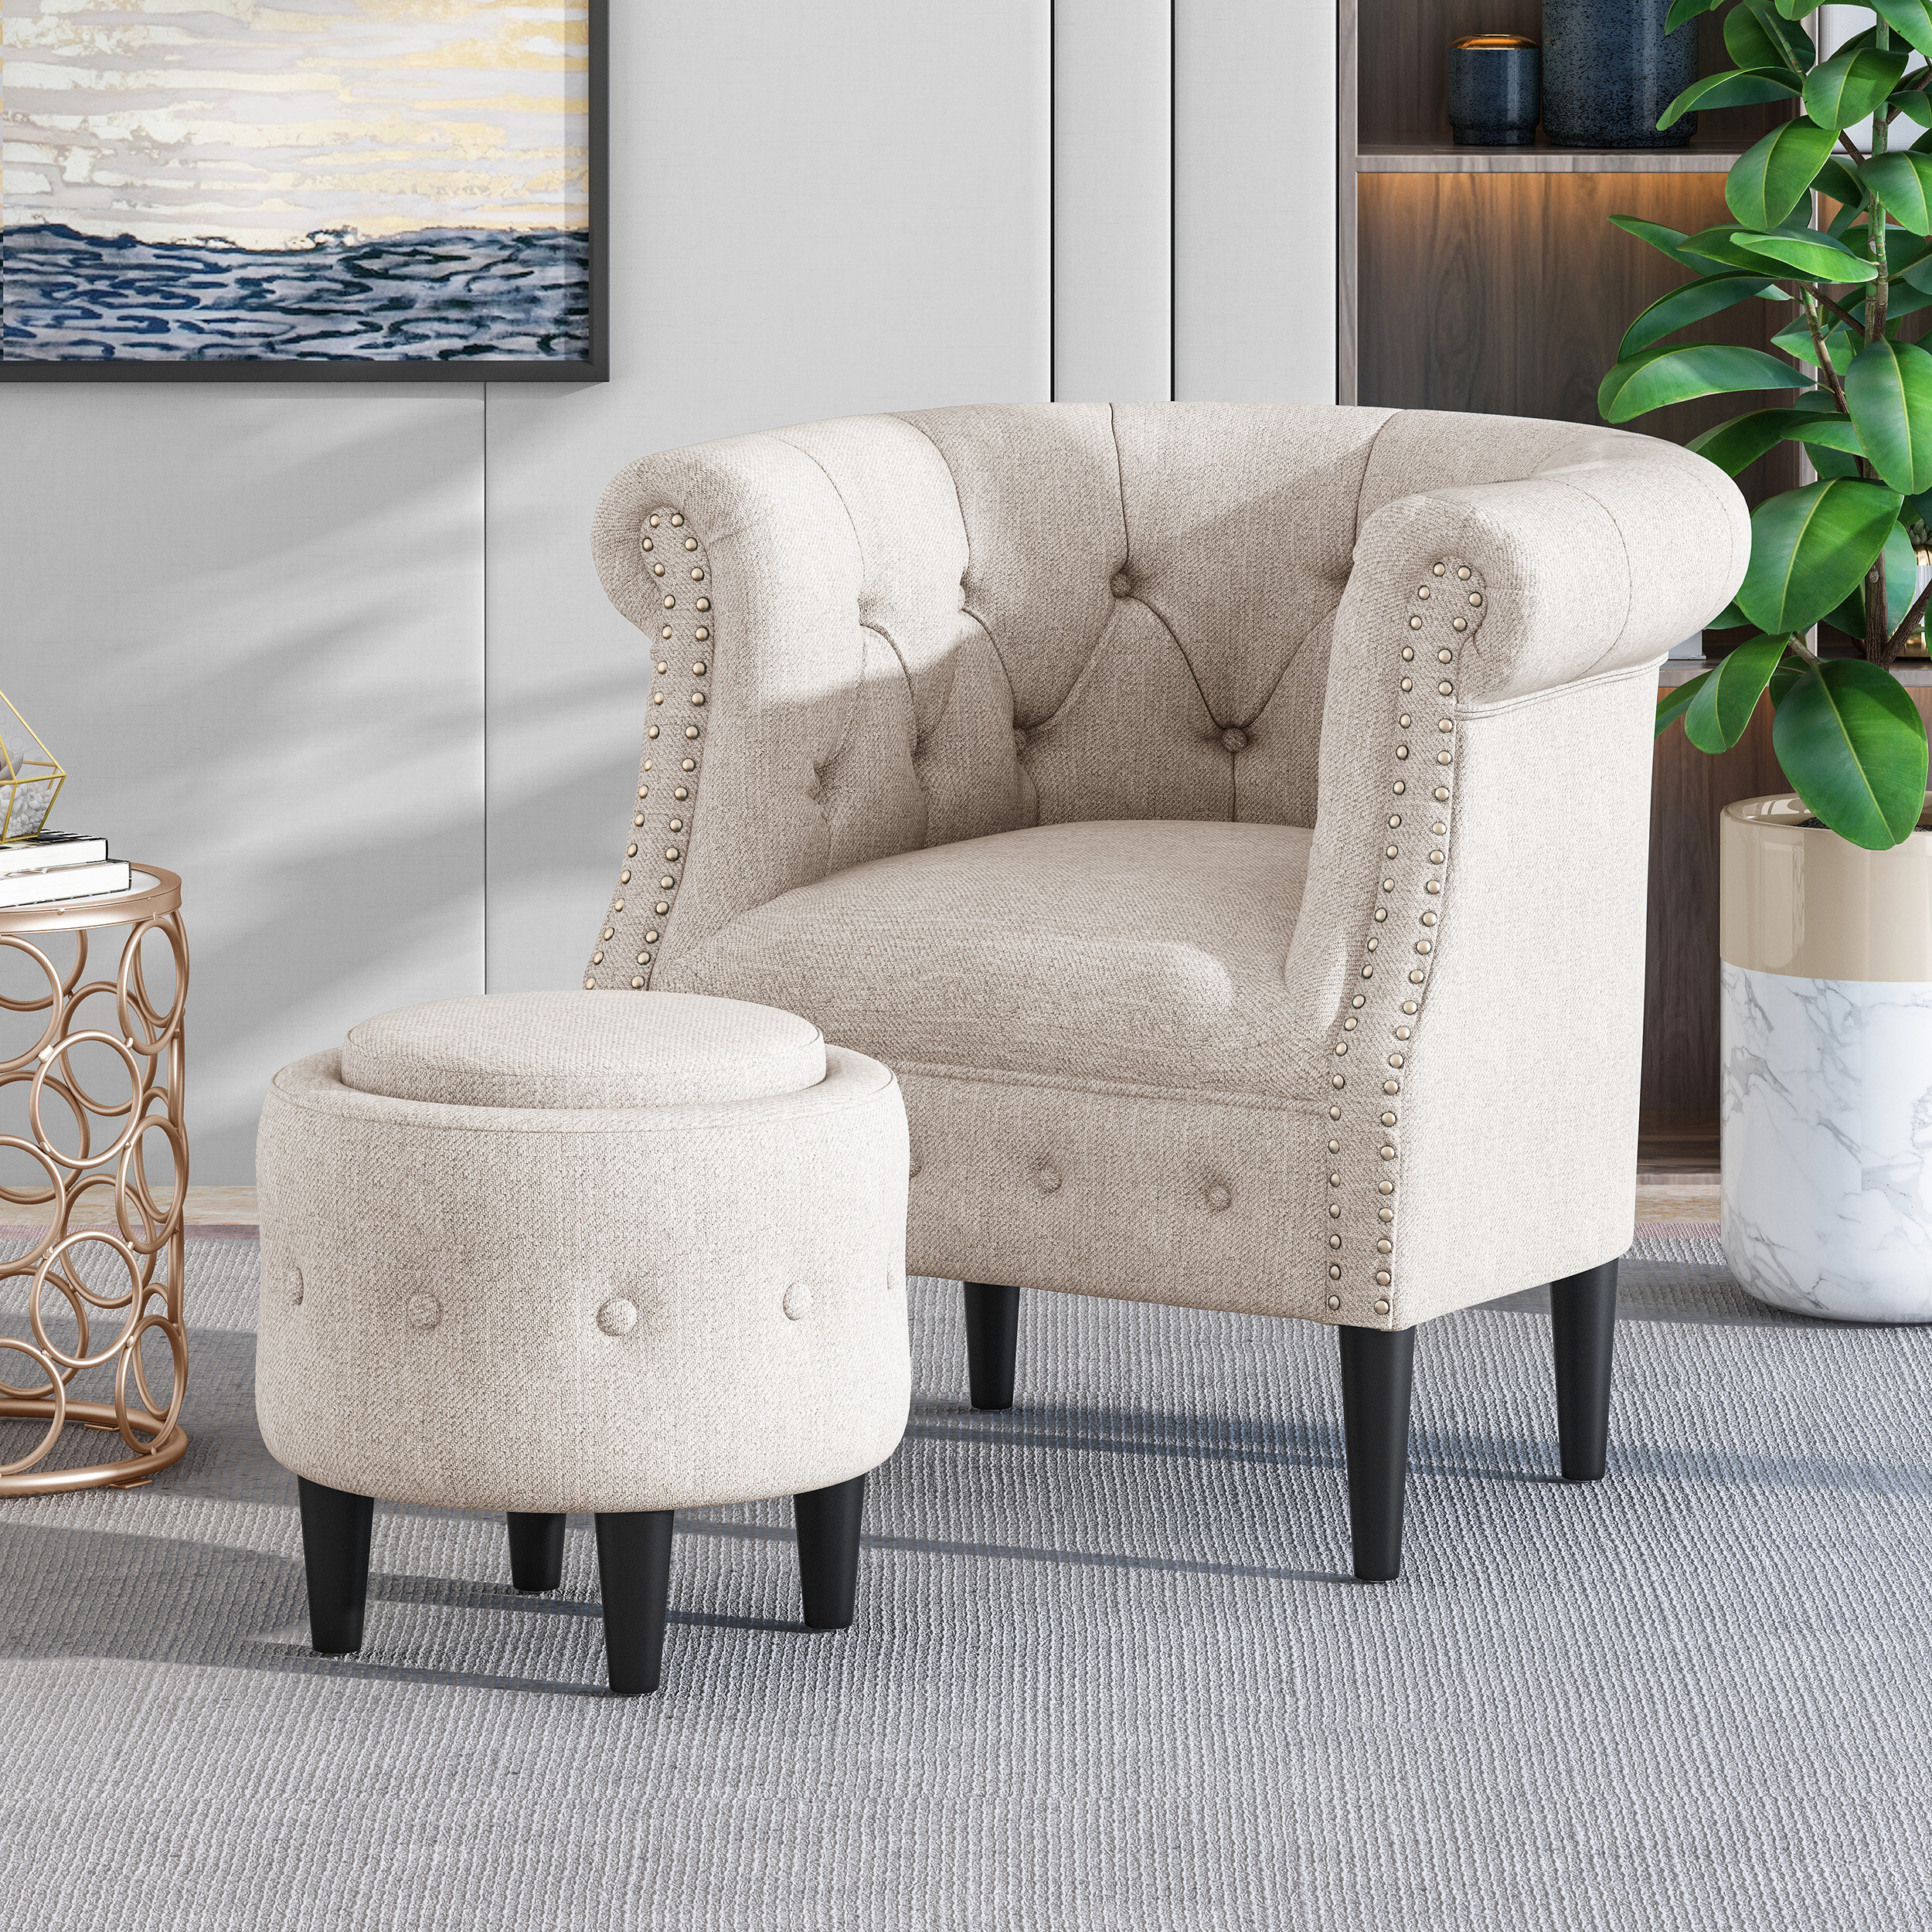 Popular Rosdorf Park Accent Chairs You'll Love In (View 9 of 20)